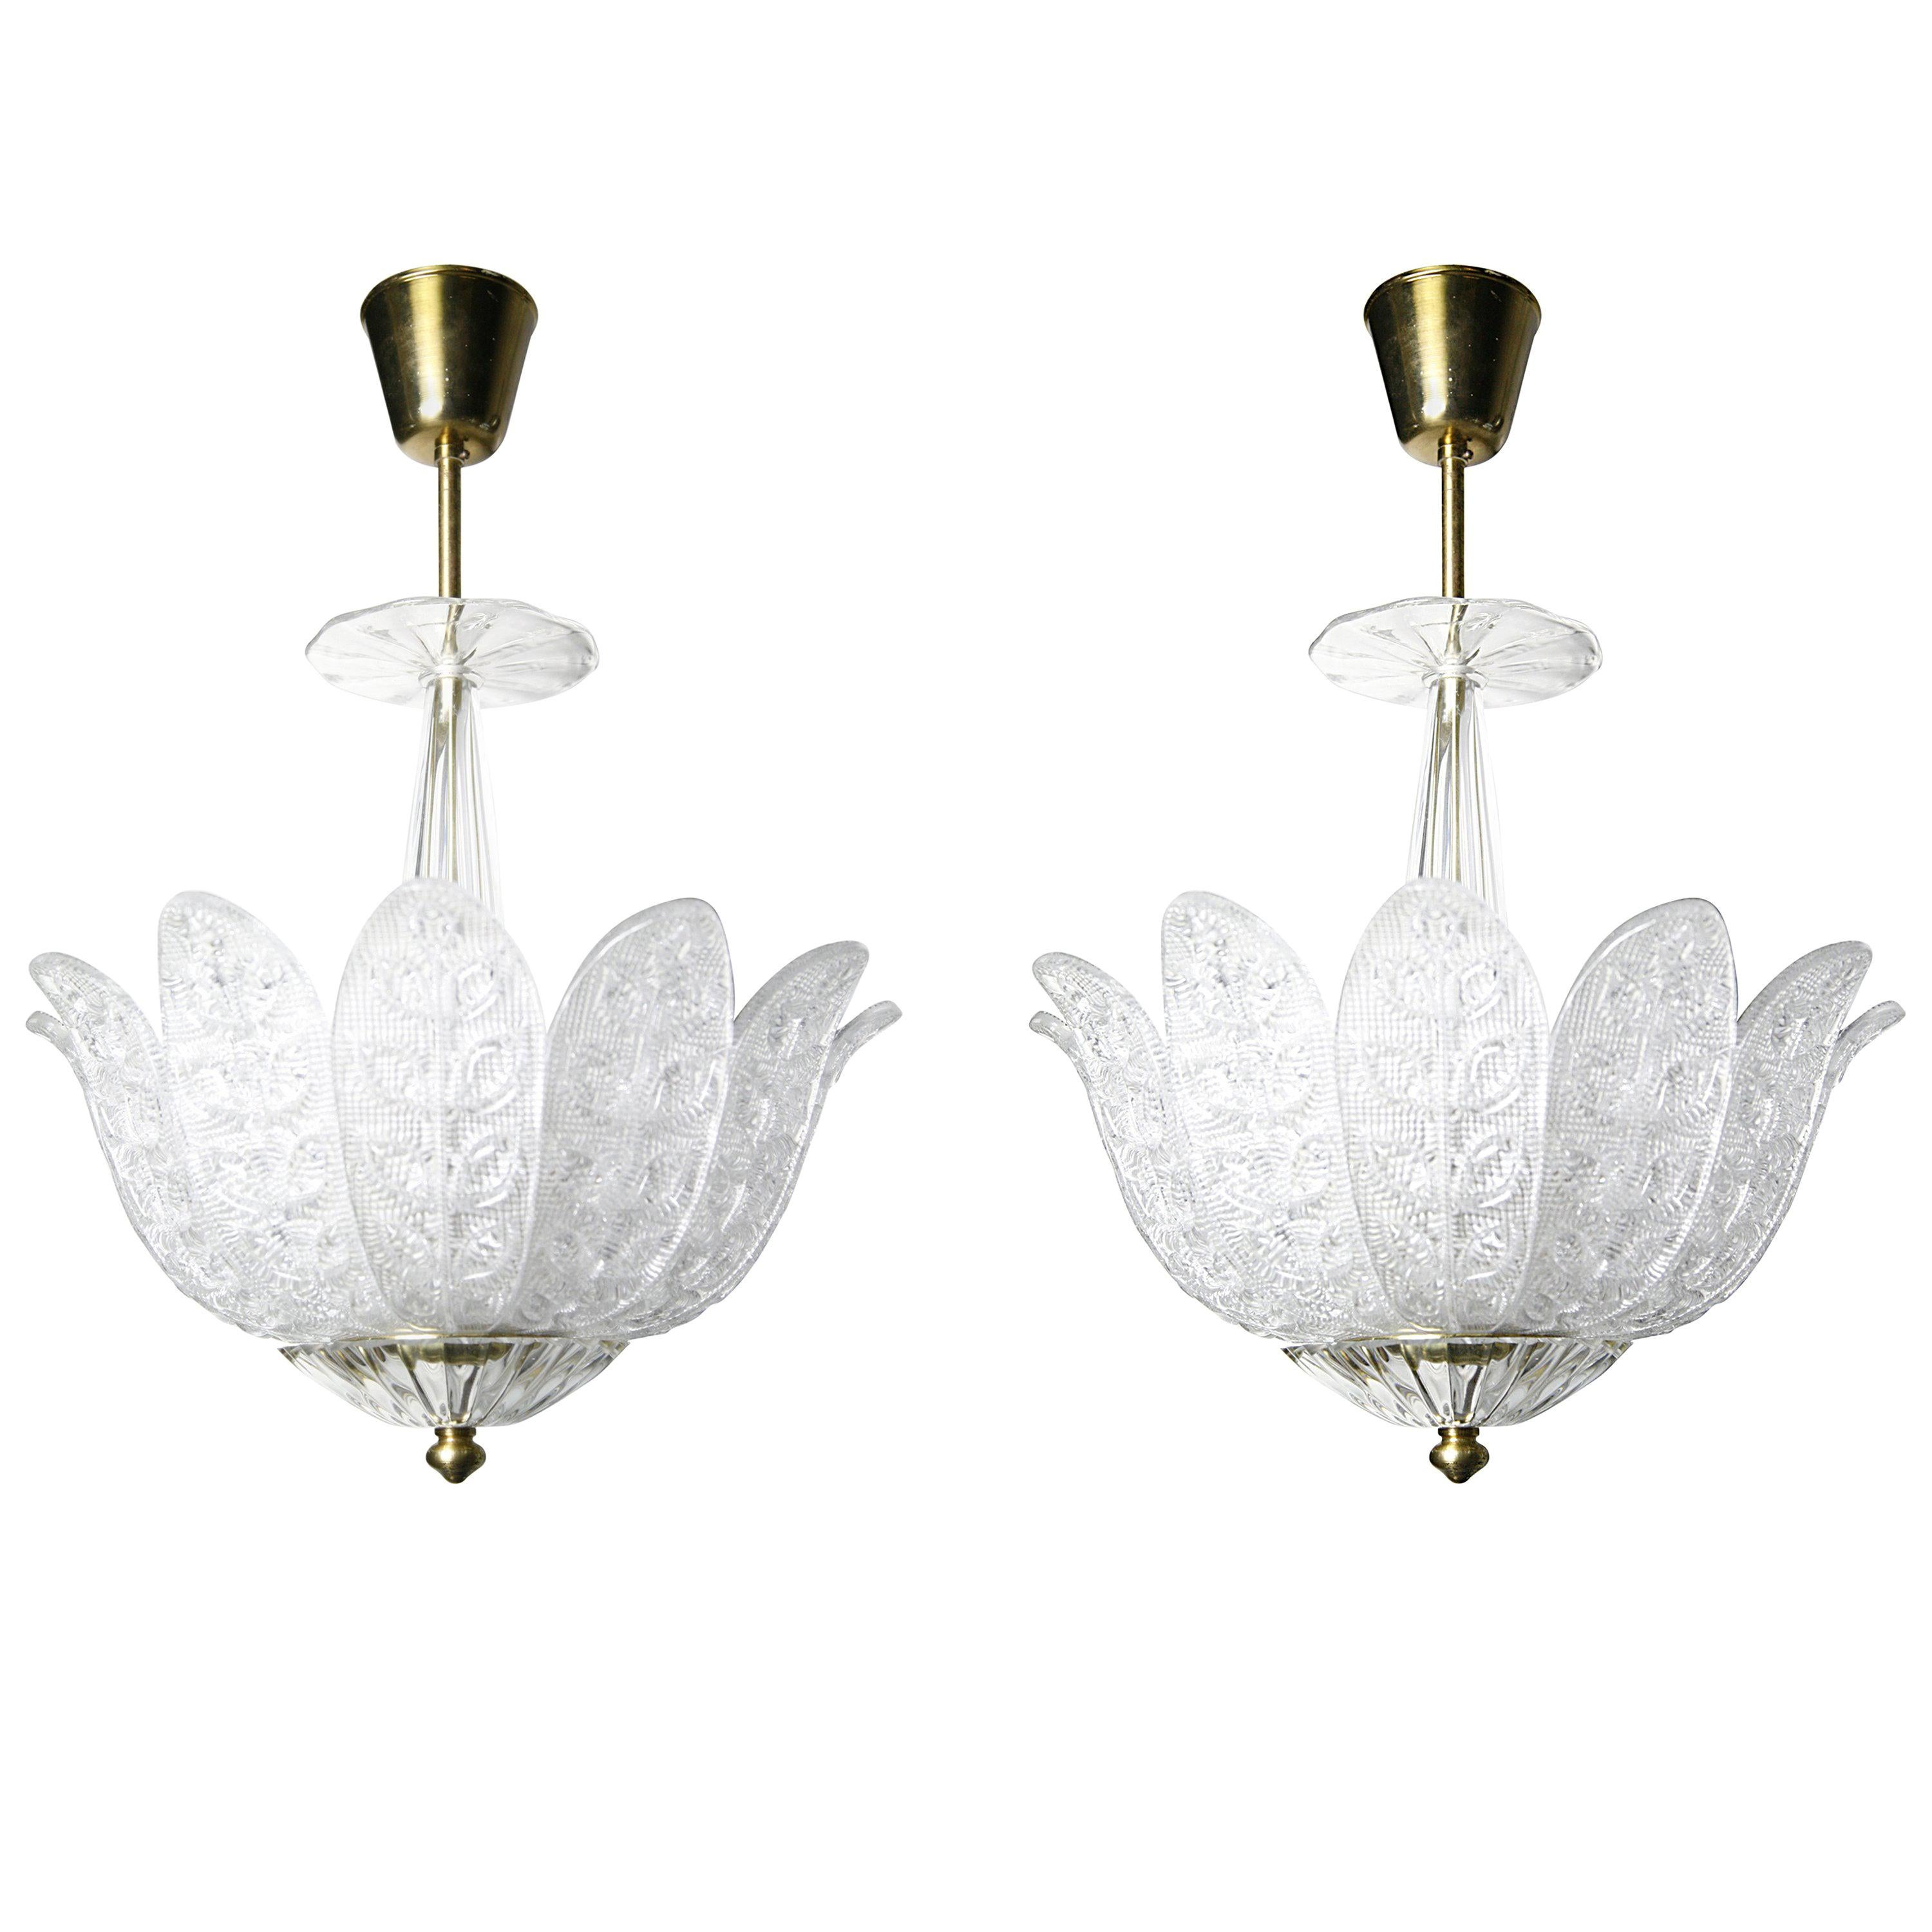 Pair of Orrefors Crystal Chandeliers in the Shape of Leaves, Sweden, 1960